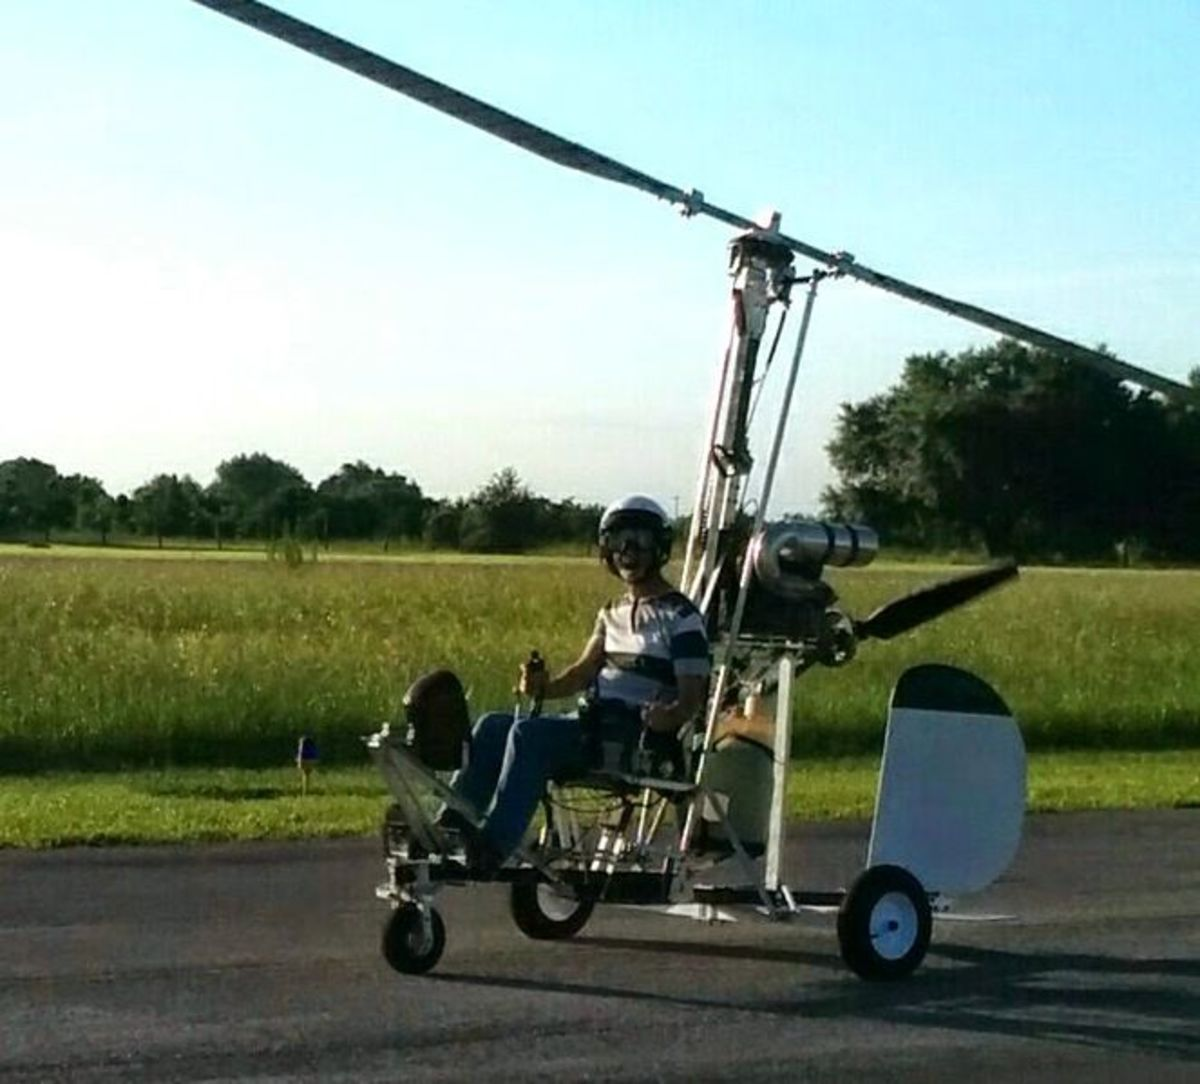 Doug Hughes in his Gyrocopter July 2014